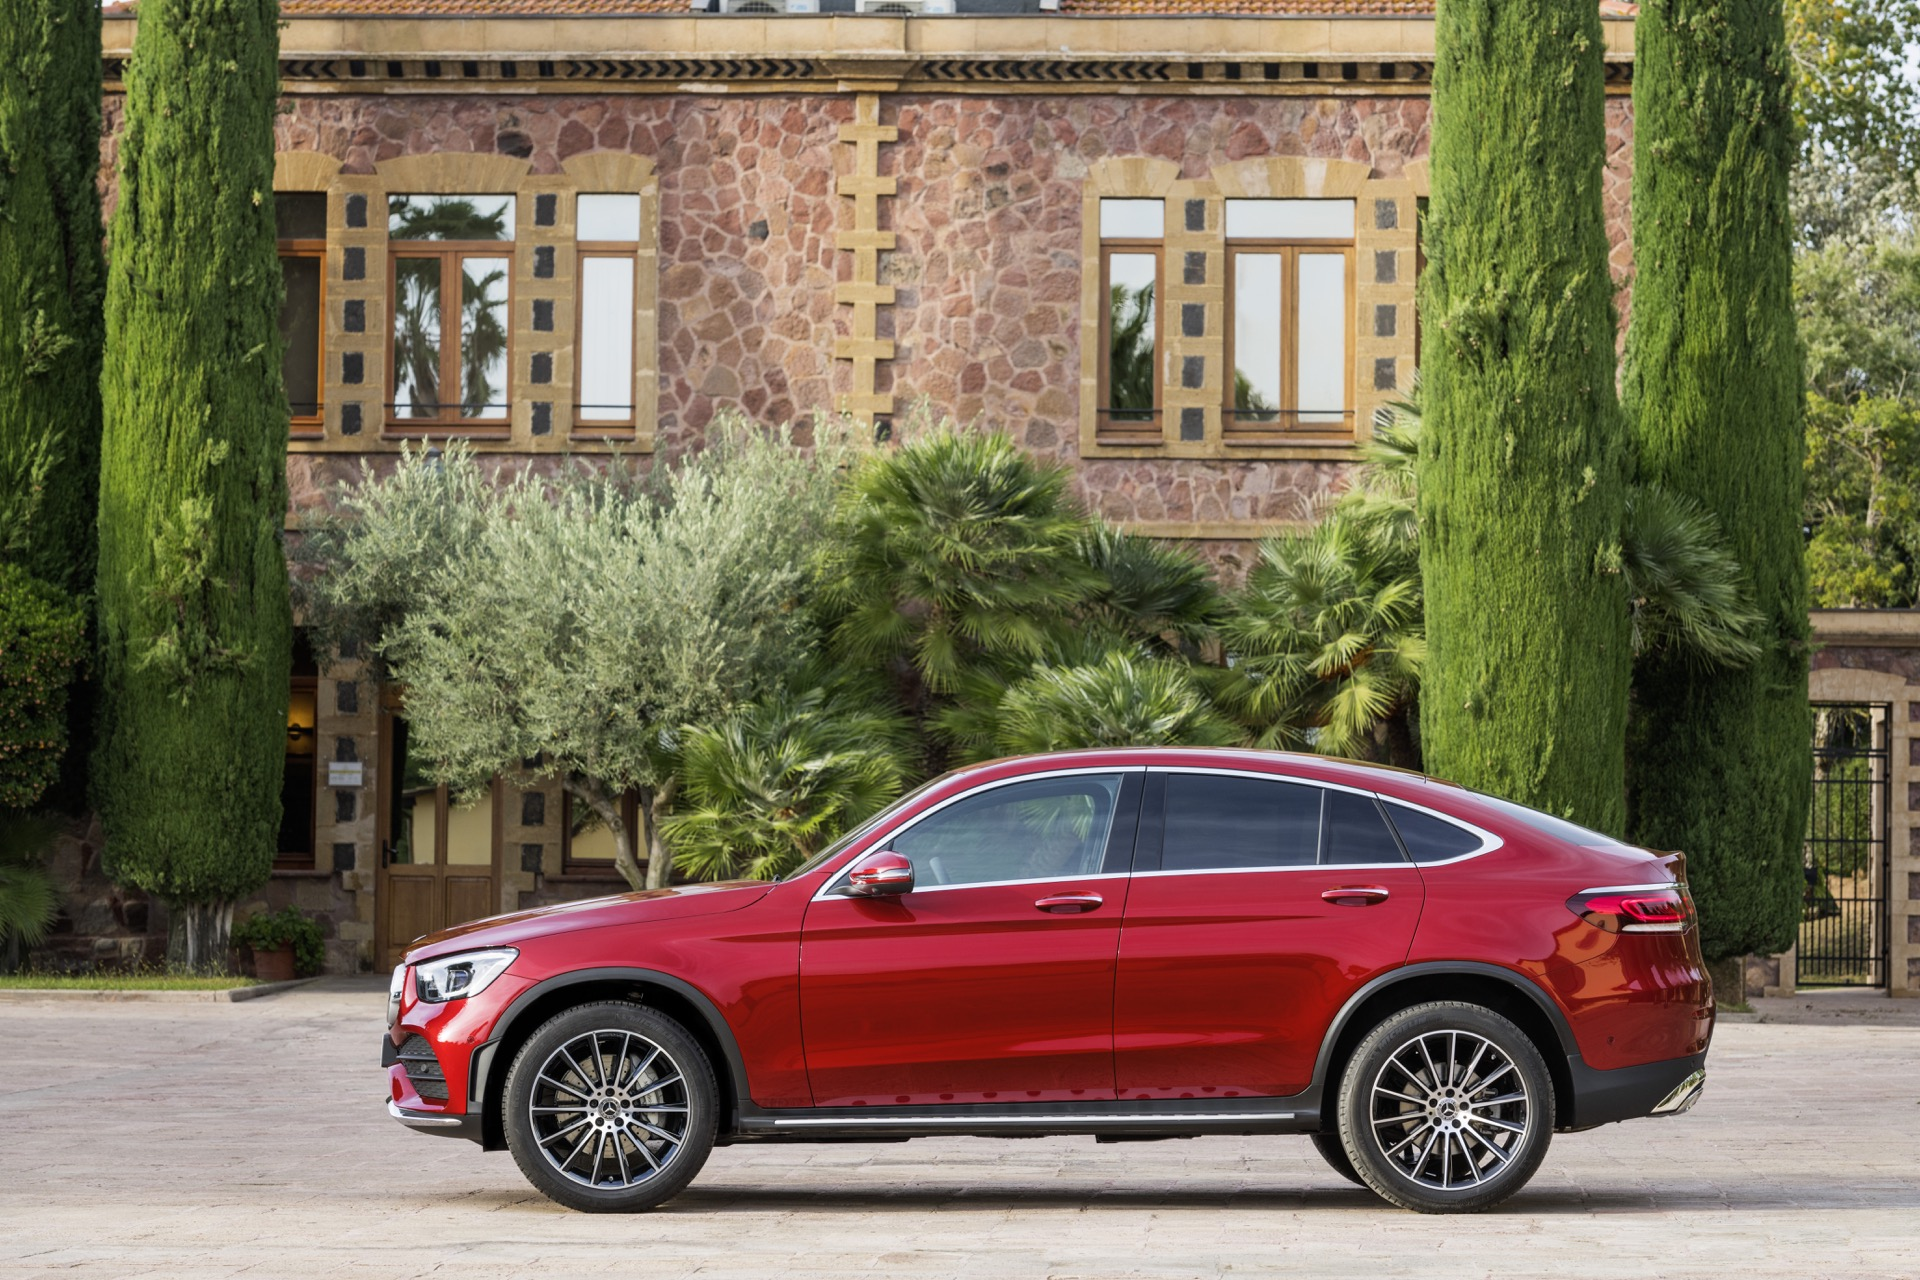 2020 Mercedes Benz Glc Coupe Revealed Ahead Of New York Auto Show